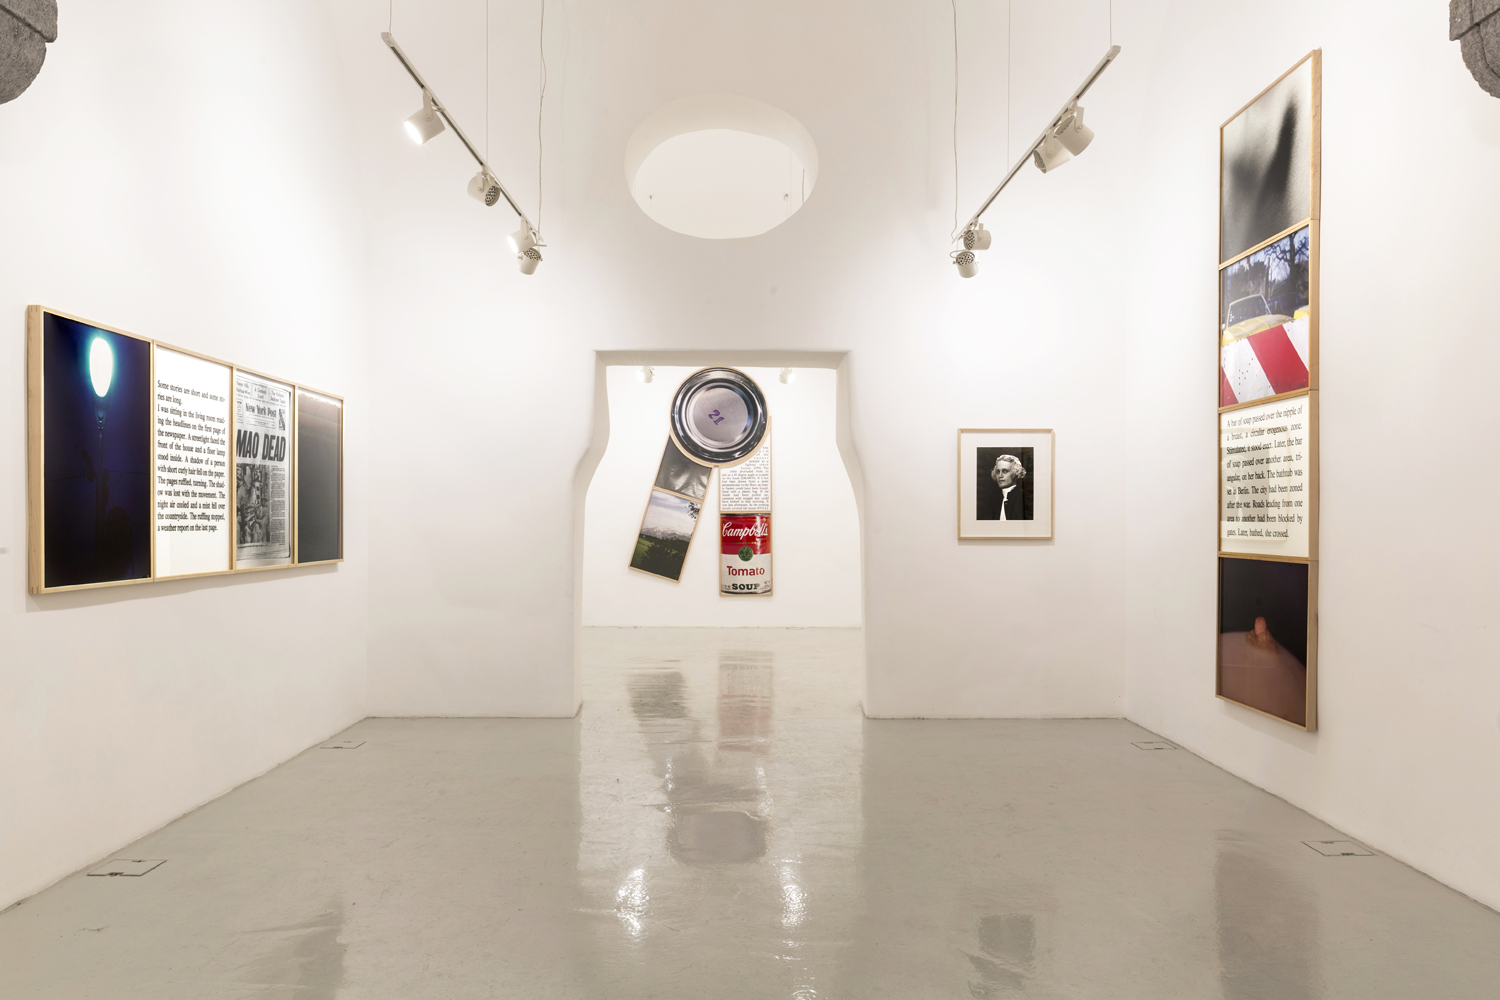 Bill Beckley,  Elements of Romance. Works from the Seventies , installation view  21 gennaio - 8 aprile 2016  -  comunicato stampa / press release